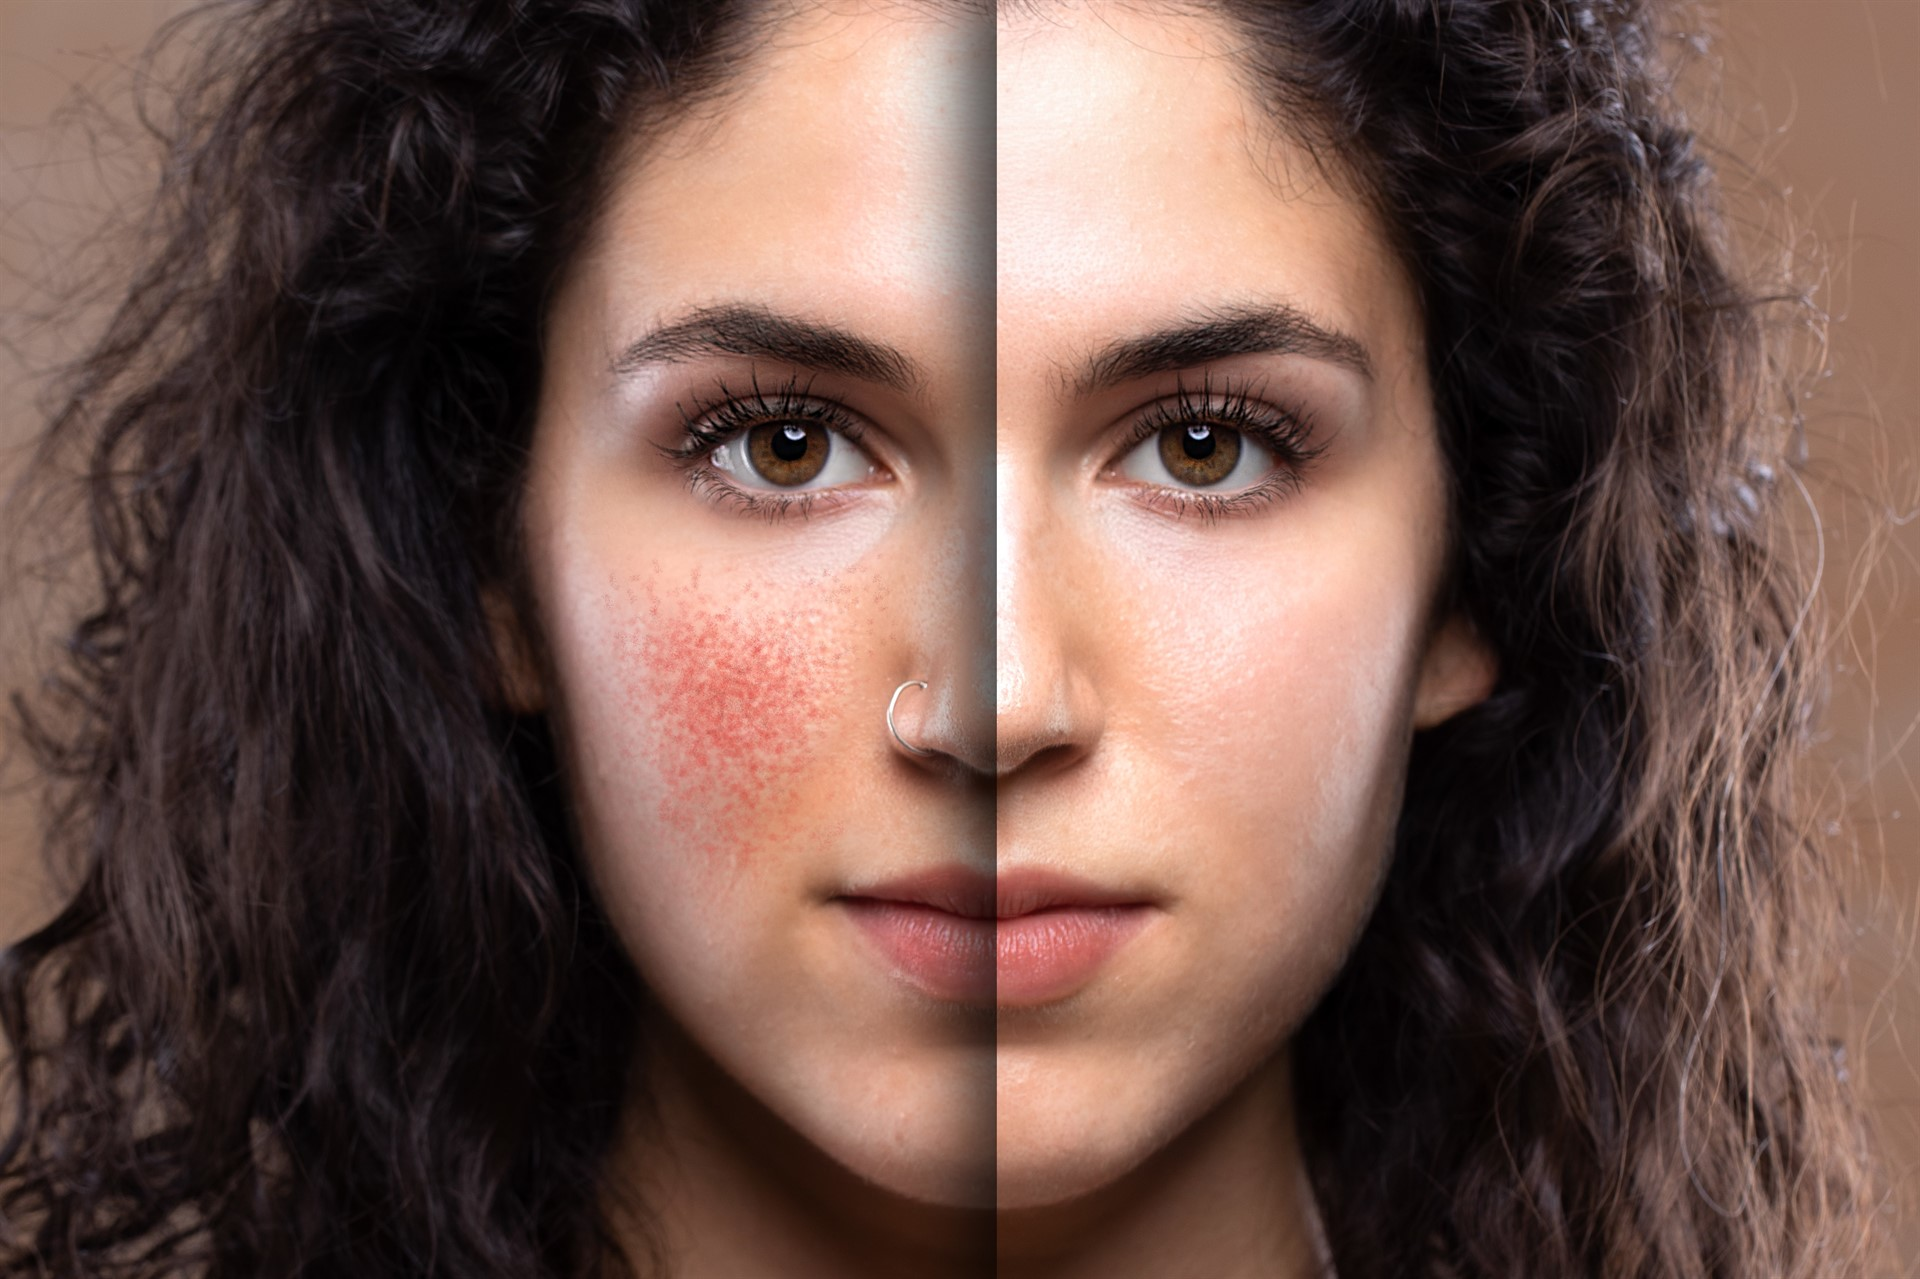 Rosacea—The Good, the Bad, and the Red